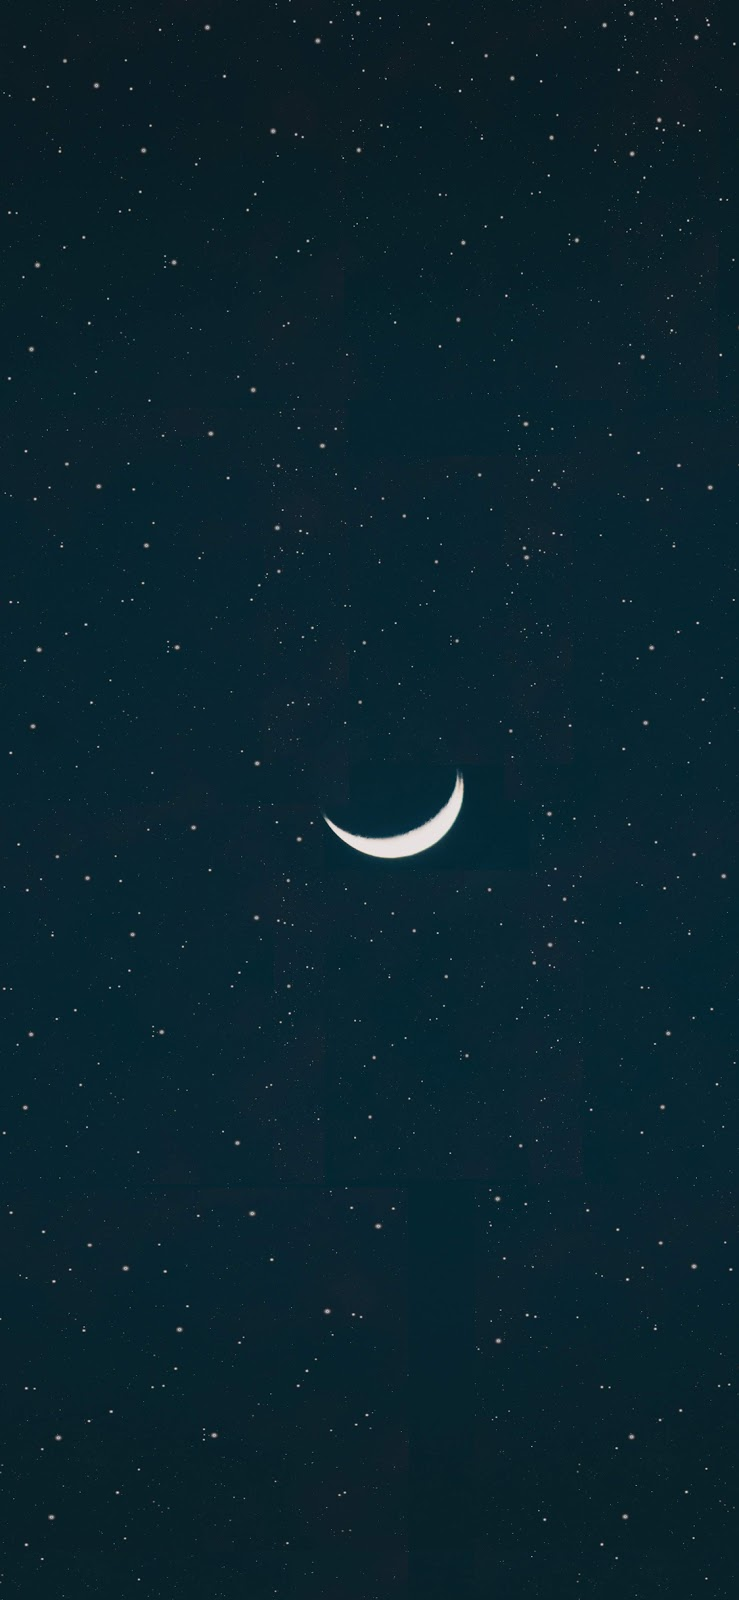 crescent moon wallpaper iphone x